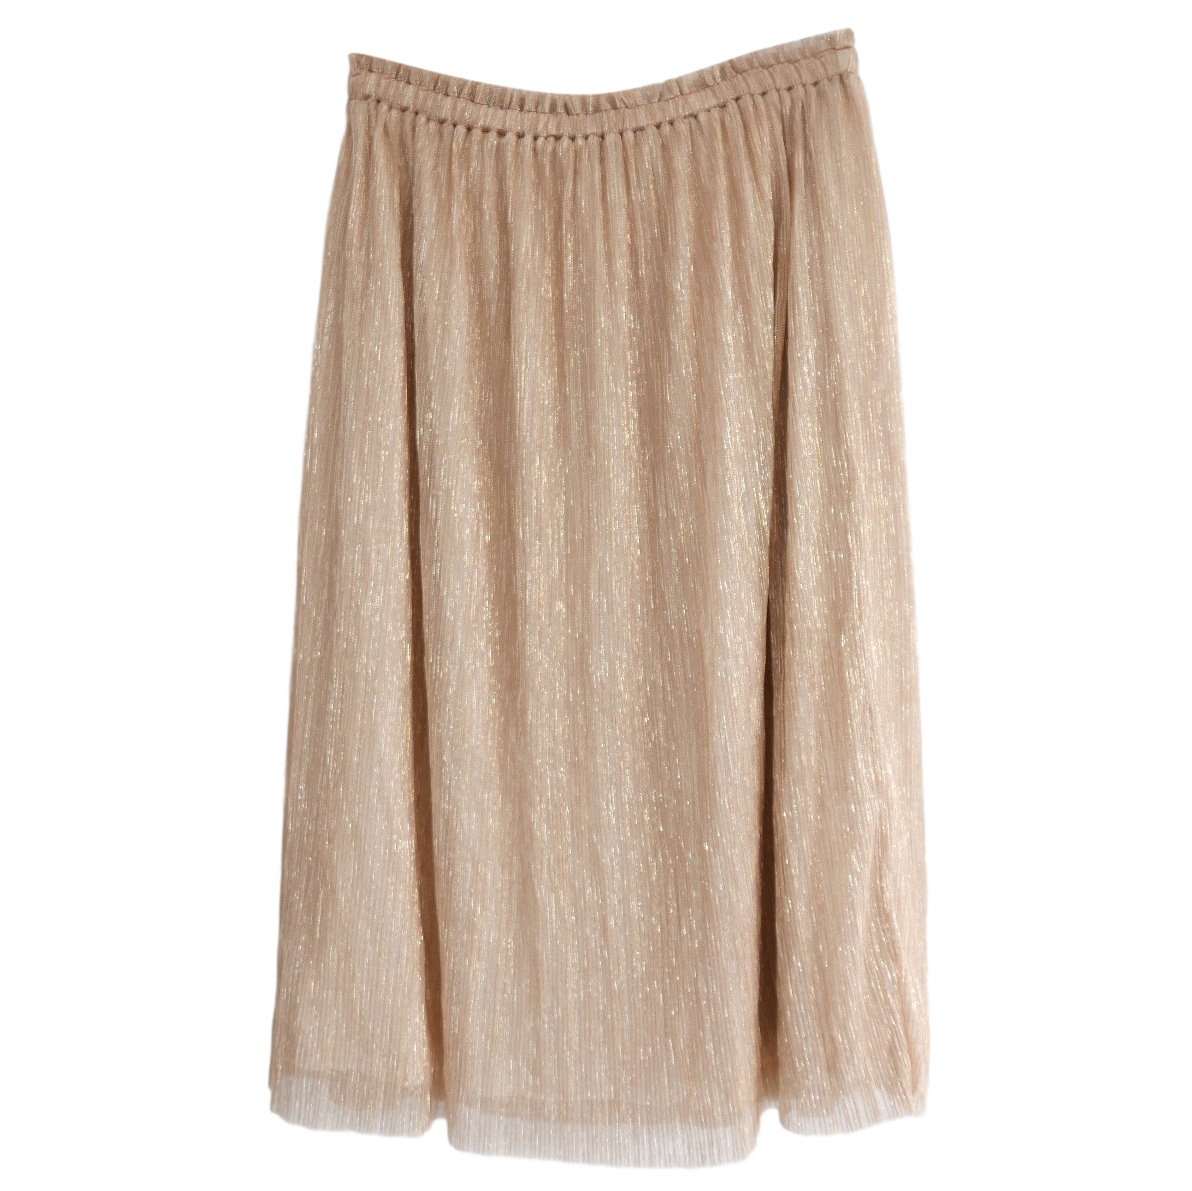 Bellerose Semi Sheer Gold Lurex Skirt